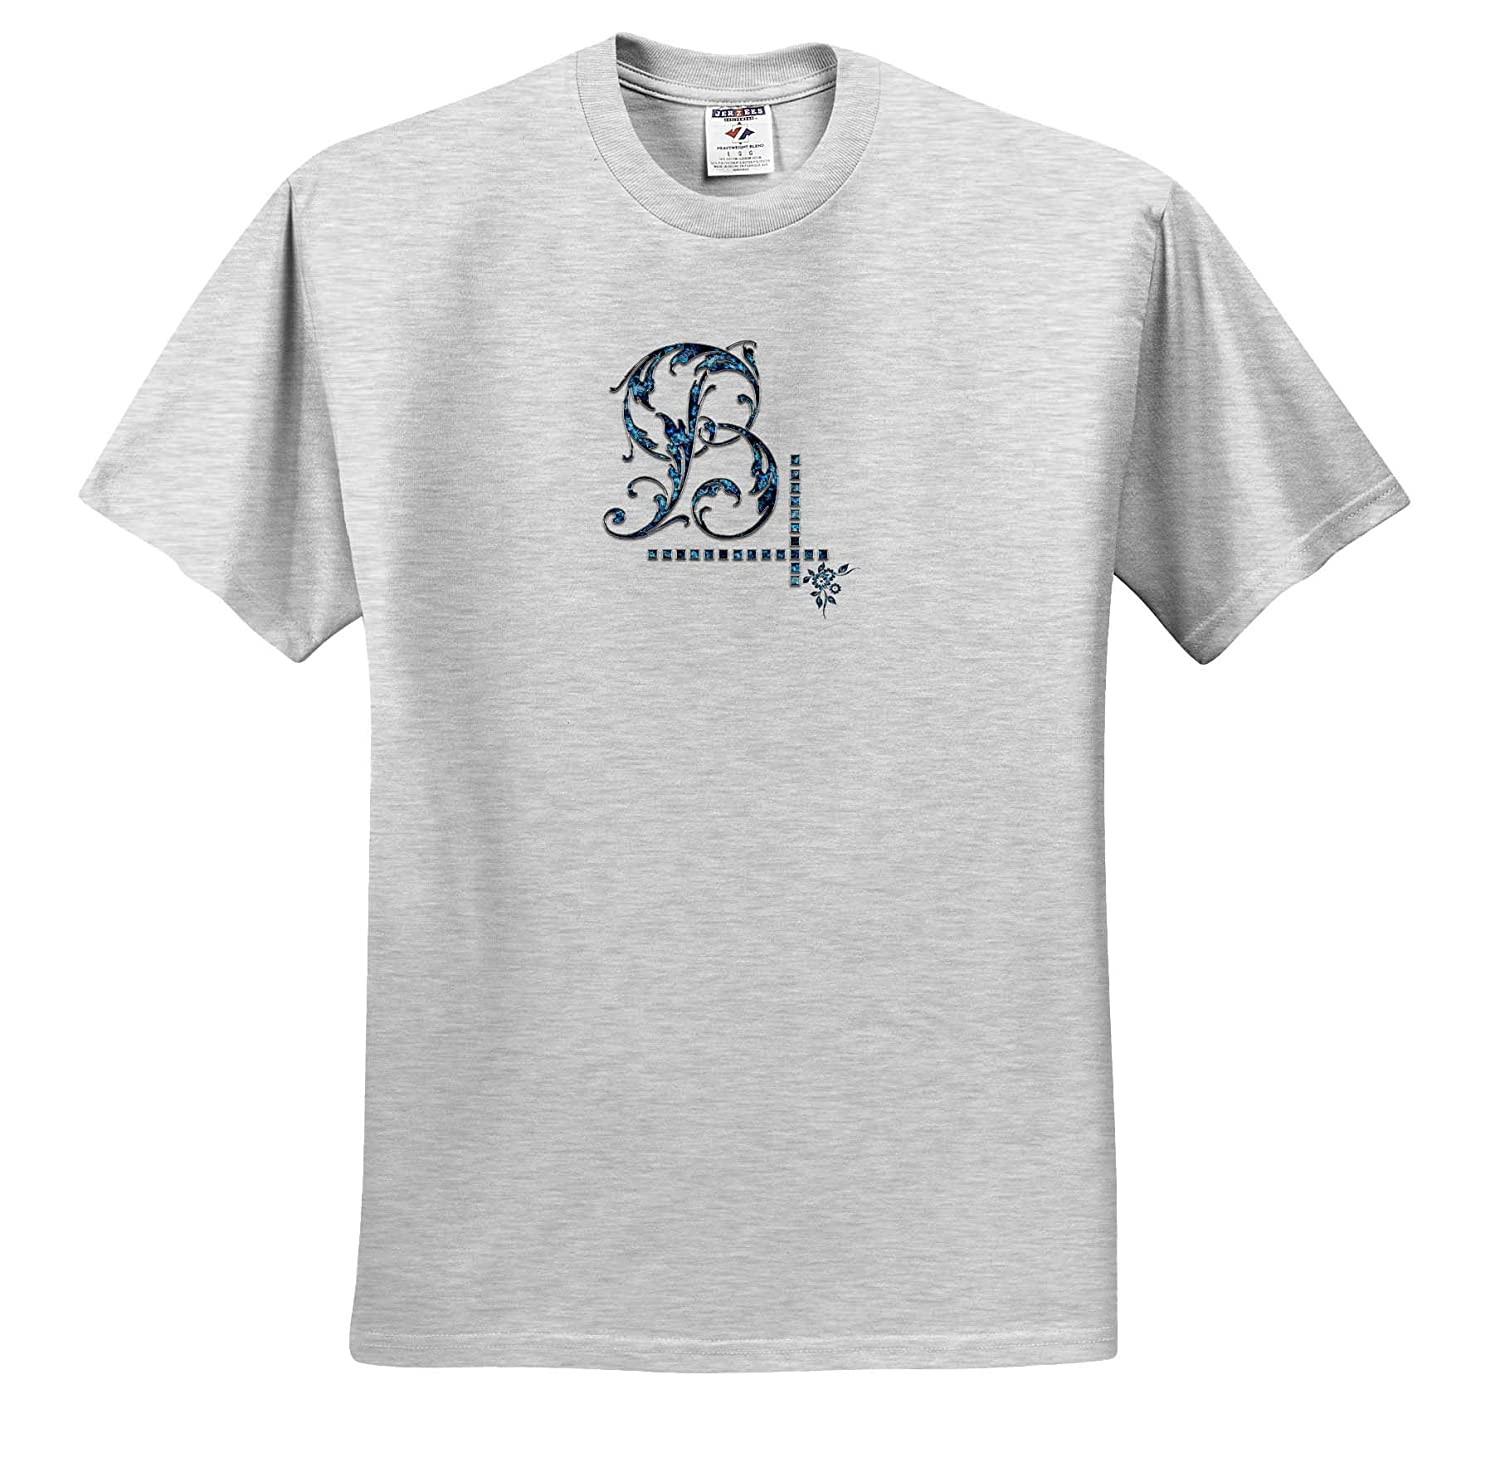 Monogram Image of Blue gem 3dRose Alexis Design Stylish Initial B T-Shirts Image of Blue Gemstone Impressive Monogram